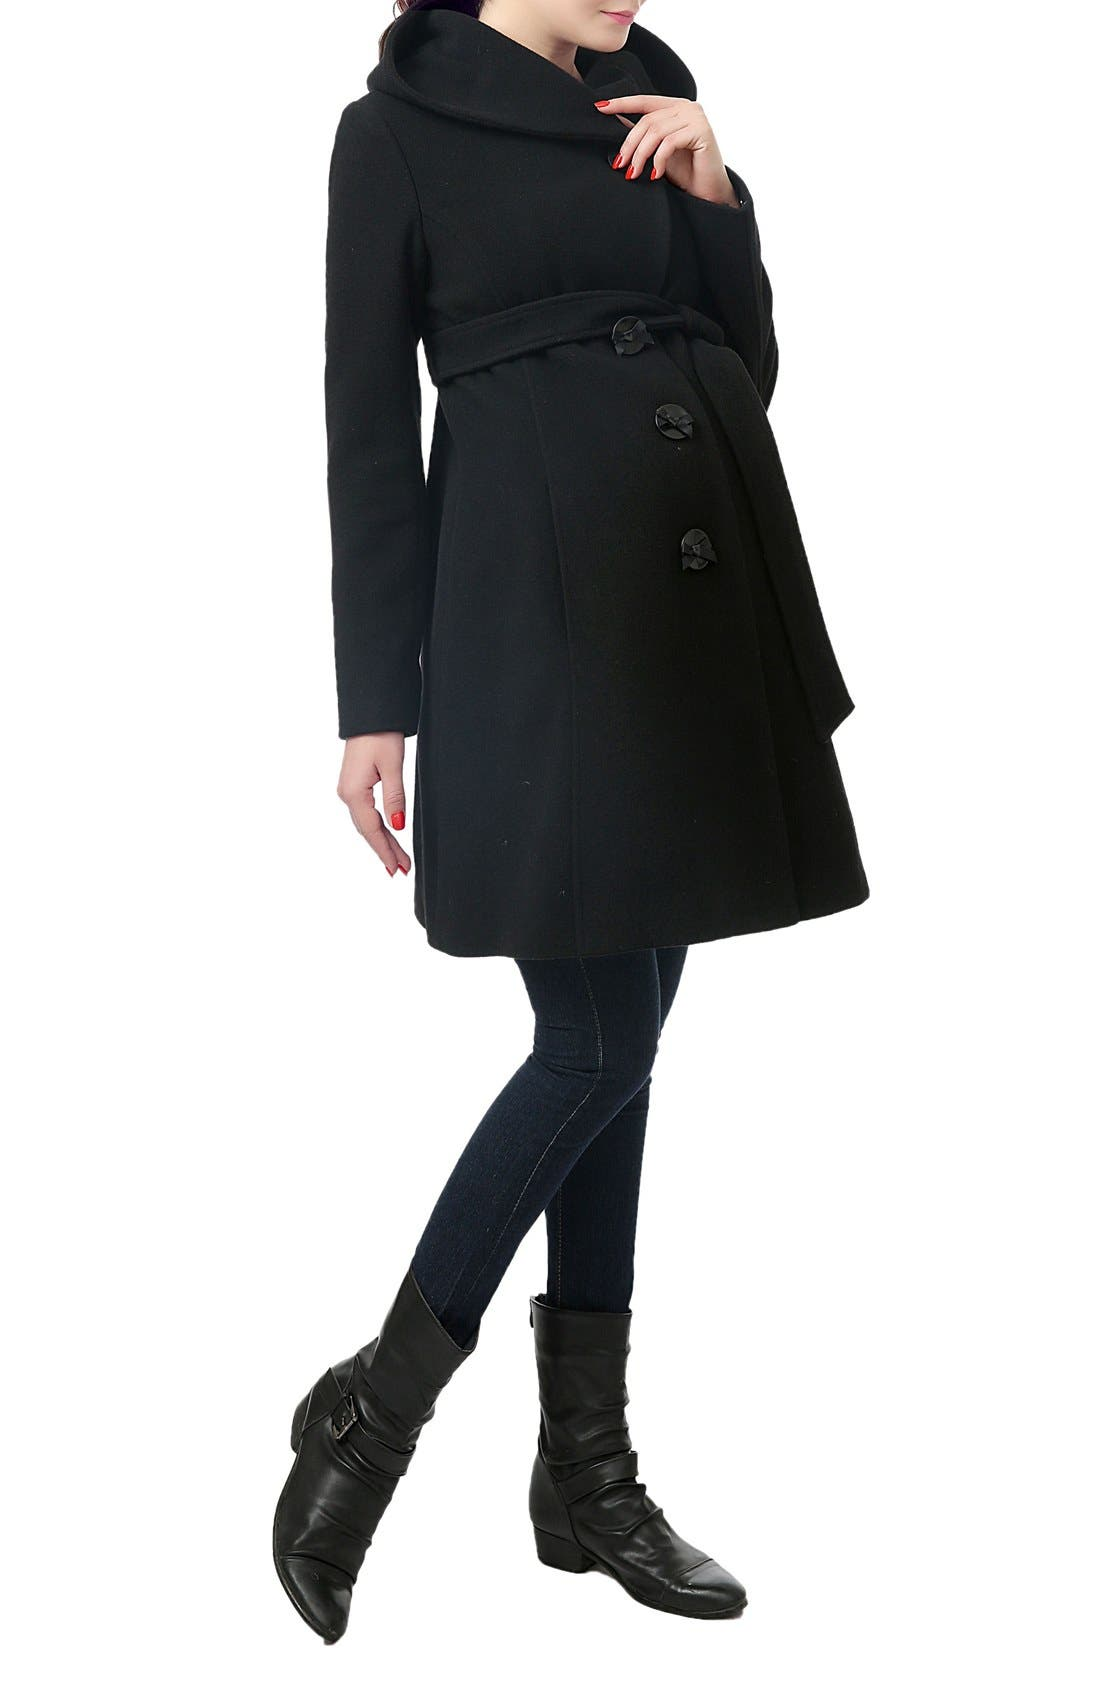 KIMI AND KAI,                             'Lora' Wool Blend Maternity Coat,                             Alternate thumbnail 4, color,                             BLACK